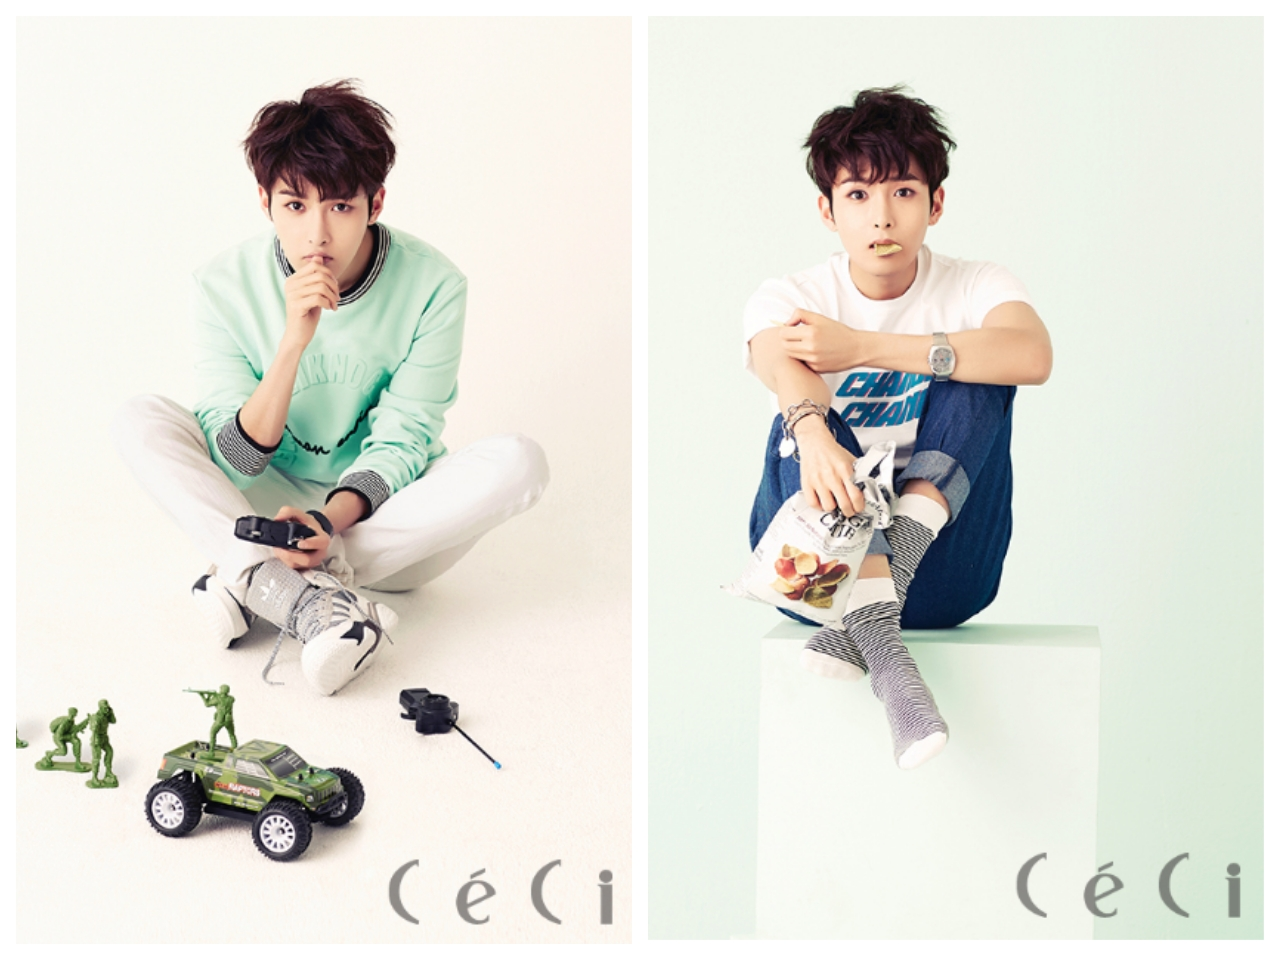 Ryeowook Ceci (1)